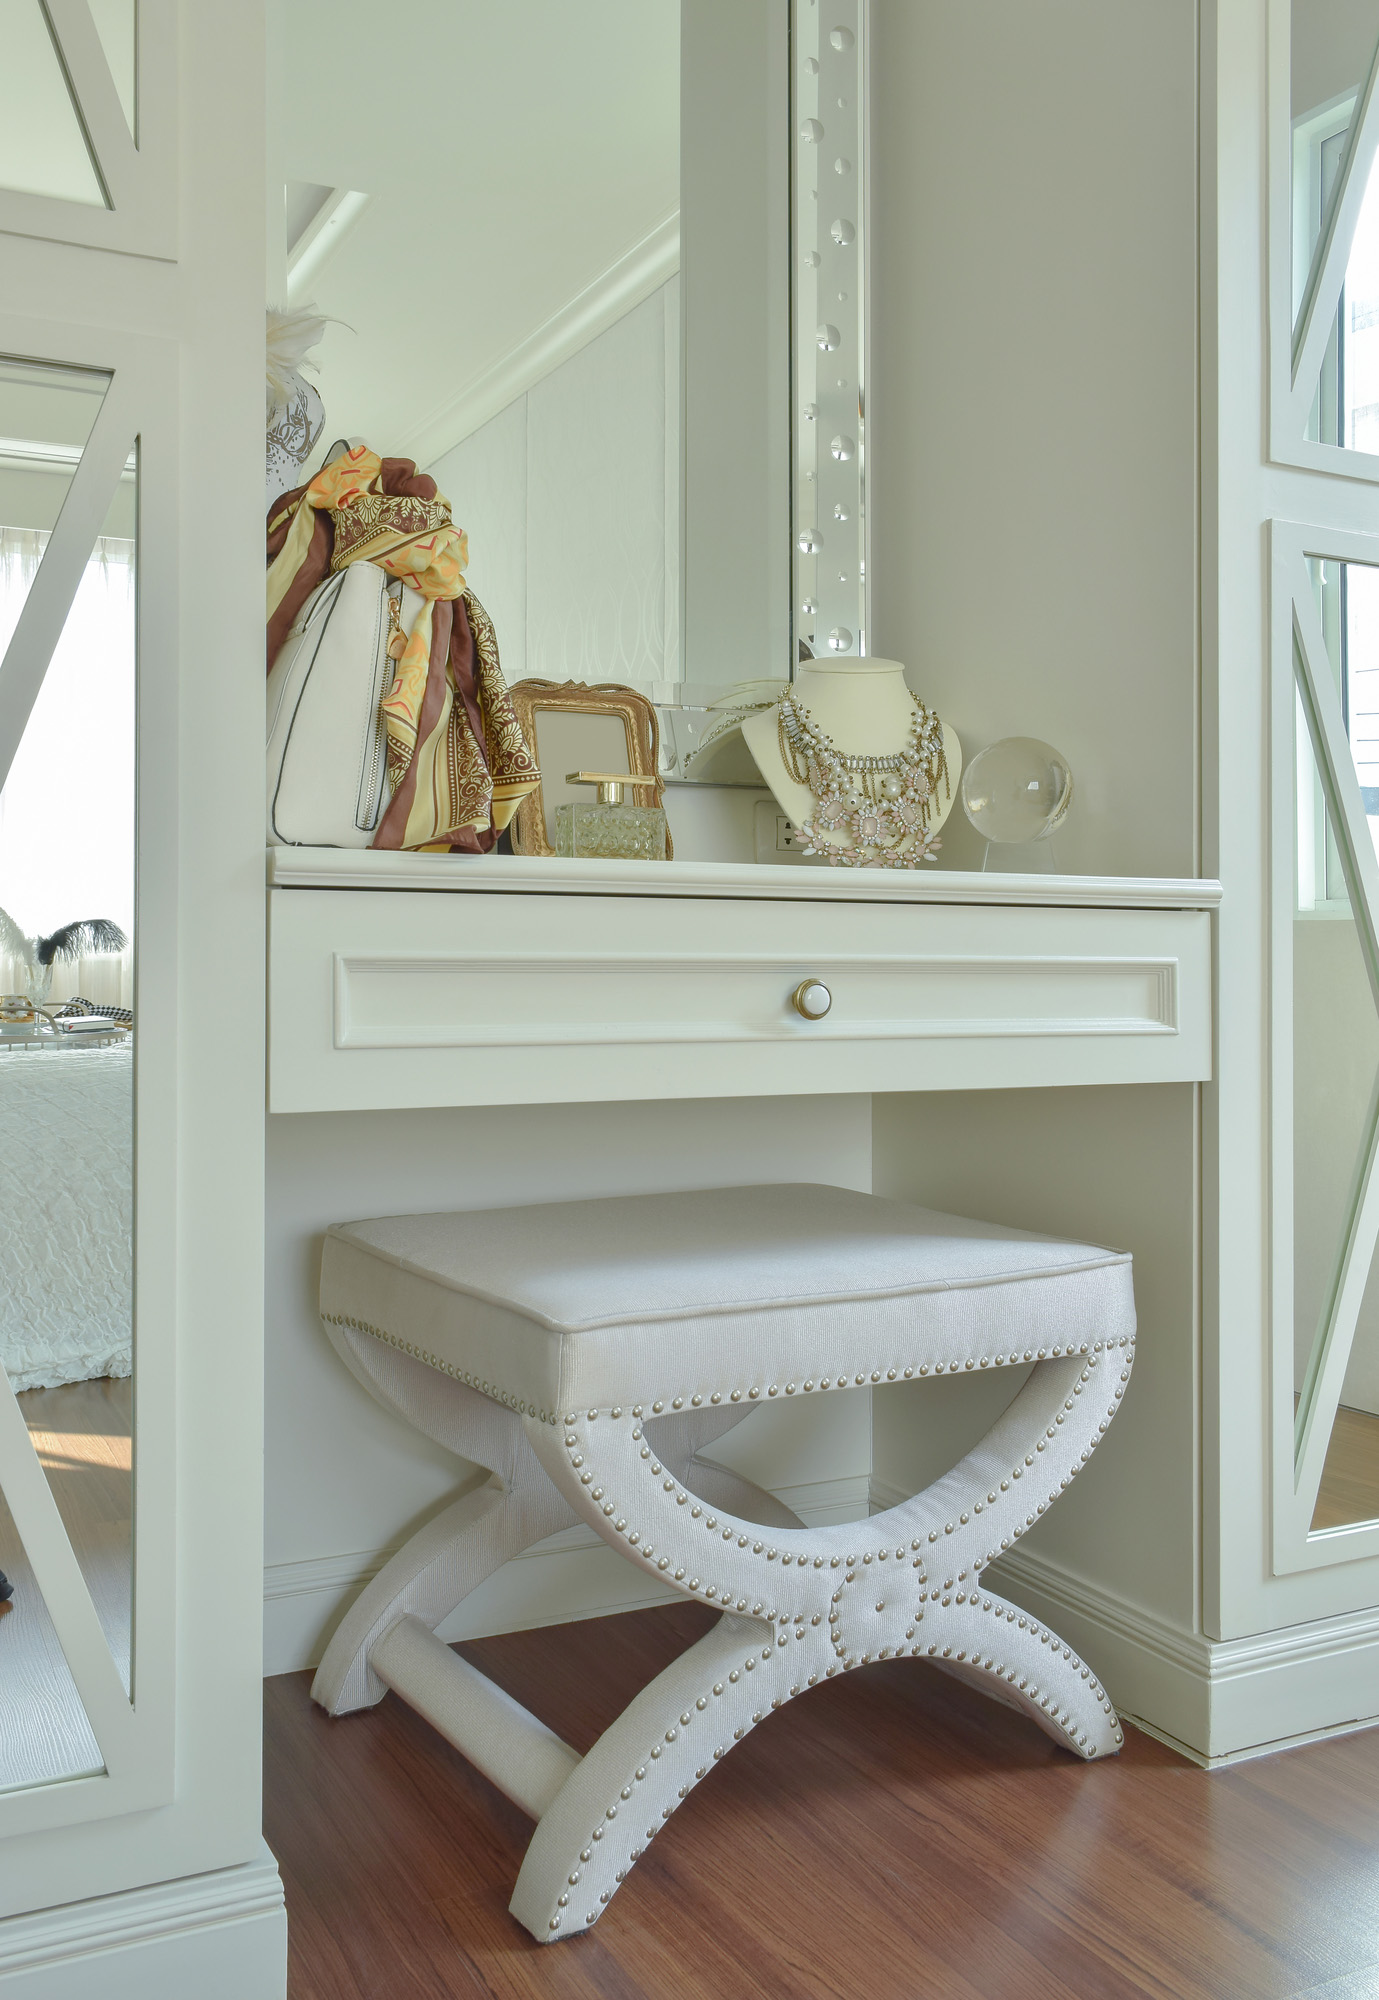 dressing room stool, dressing table, bedroom ideas for women